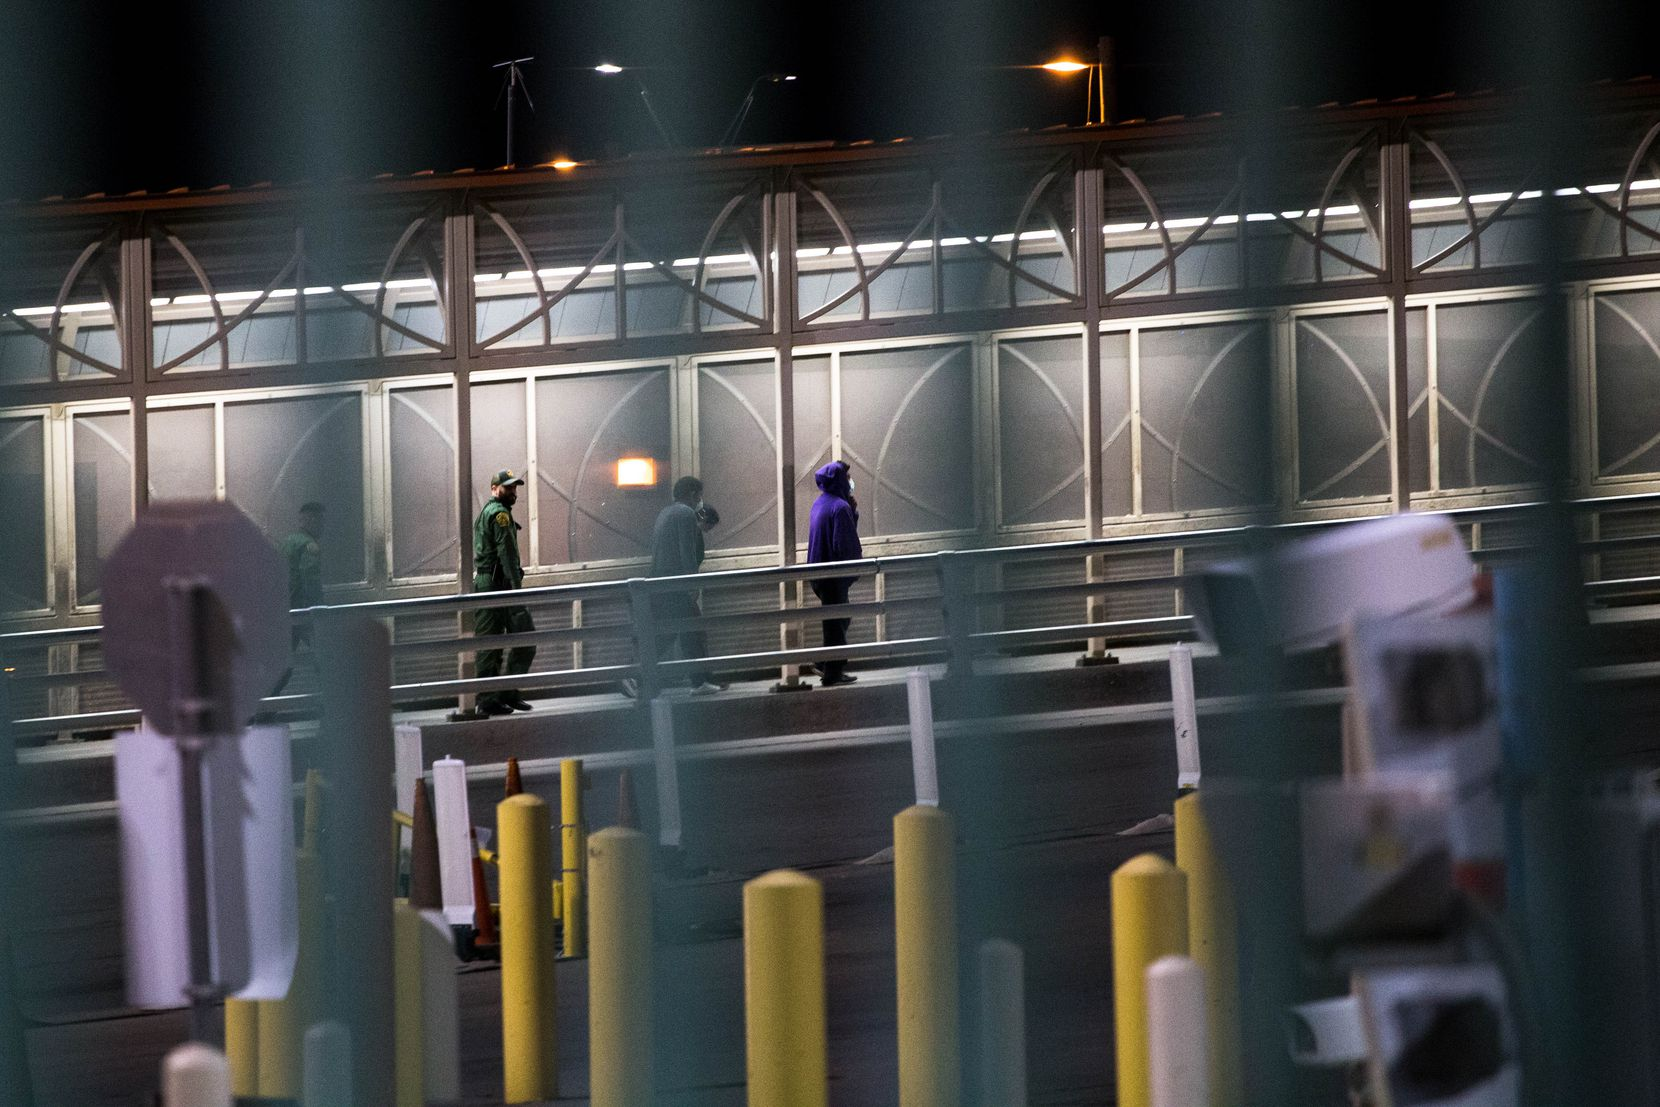 U.S. Border Patrol agents escort travelers back to Ciudad Juarez, Mexico, after rejecting their entry into the U.S. through the Paso Del Norte Port of Entry in El Paso in the early hours of Saturday, March 21, 2020.